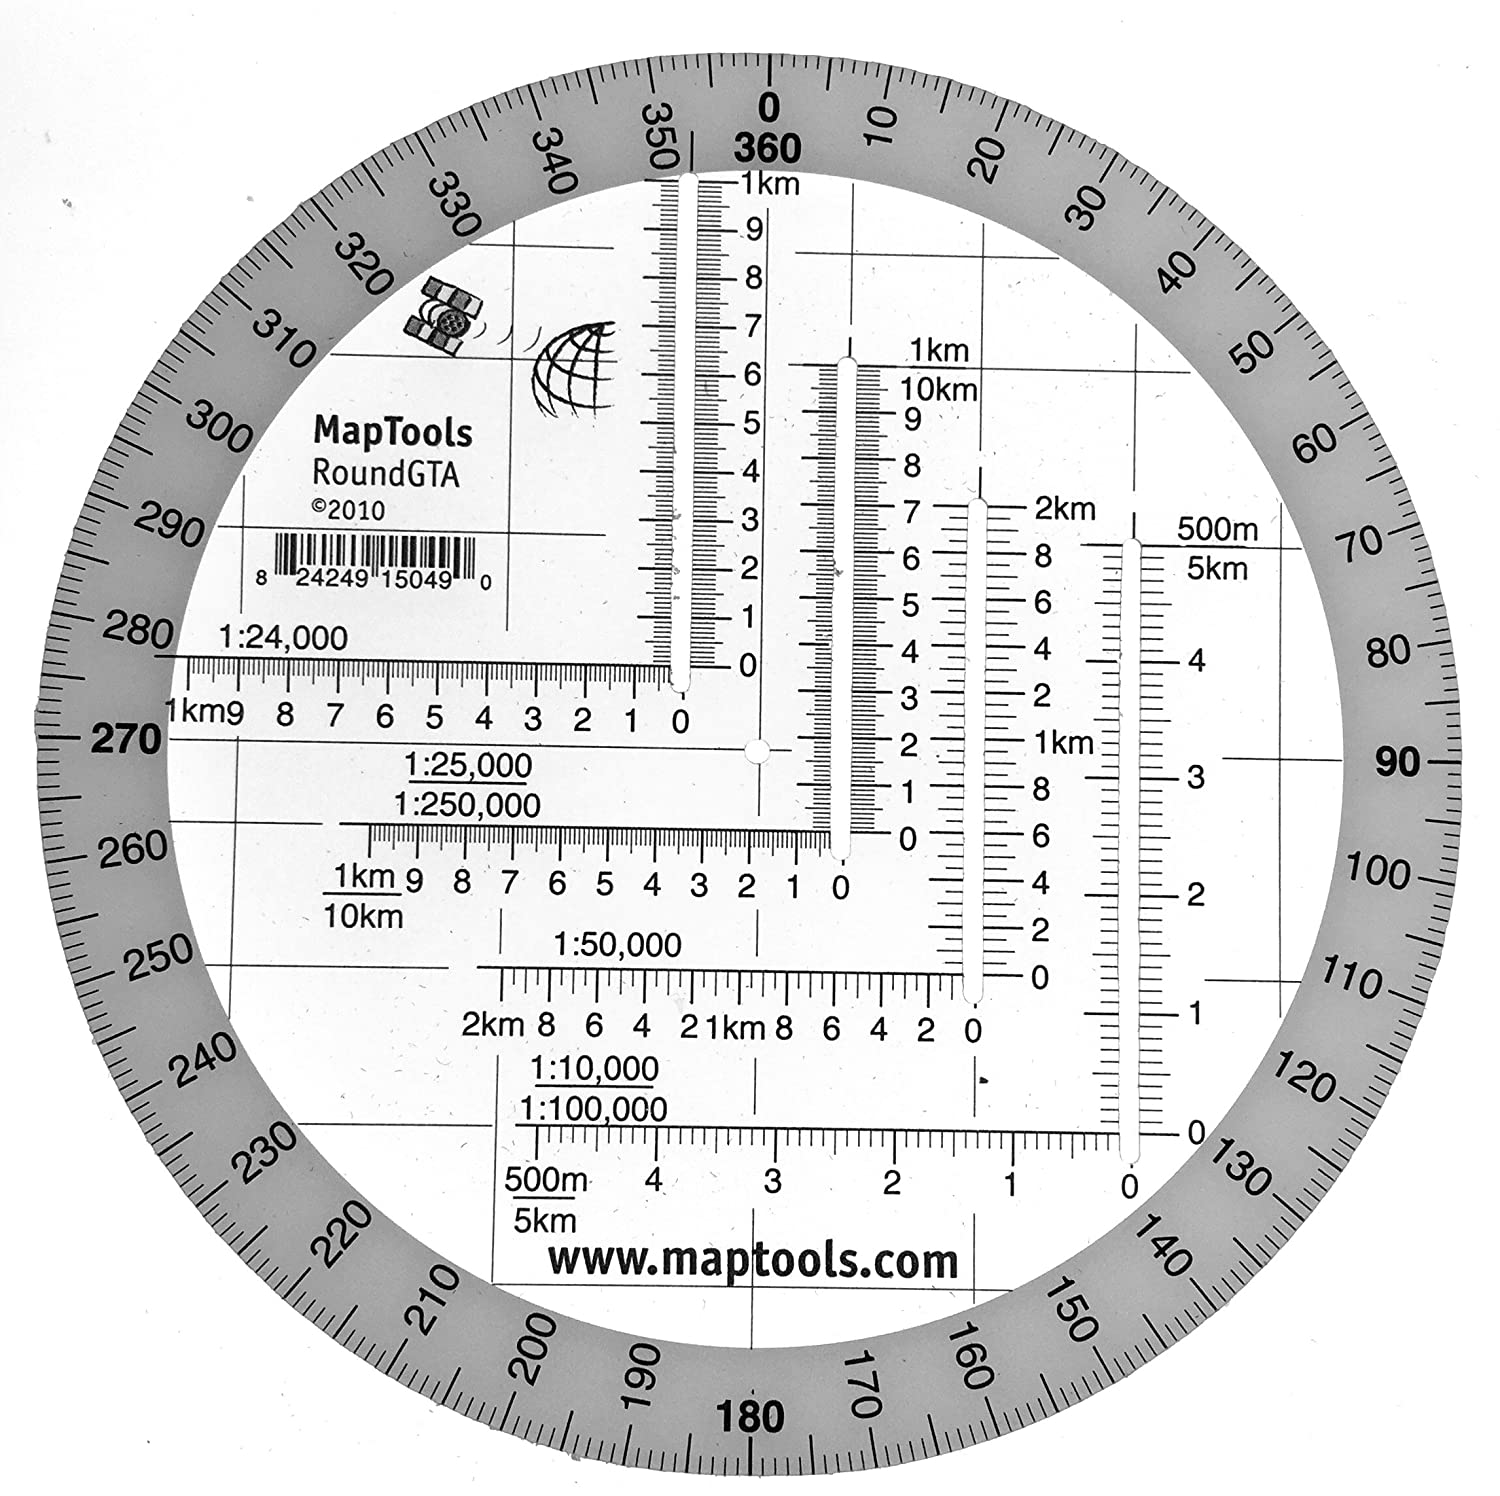 worksheet Protractor Template protractors amazon com office school supplies writing round military coordinate scale and protractor